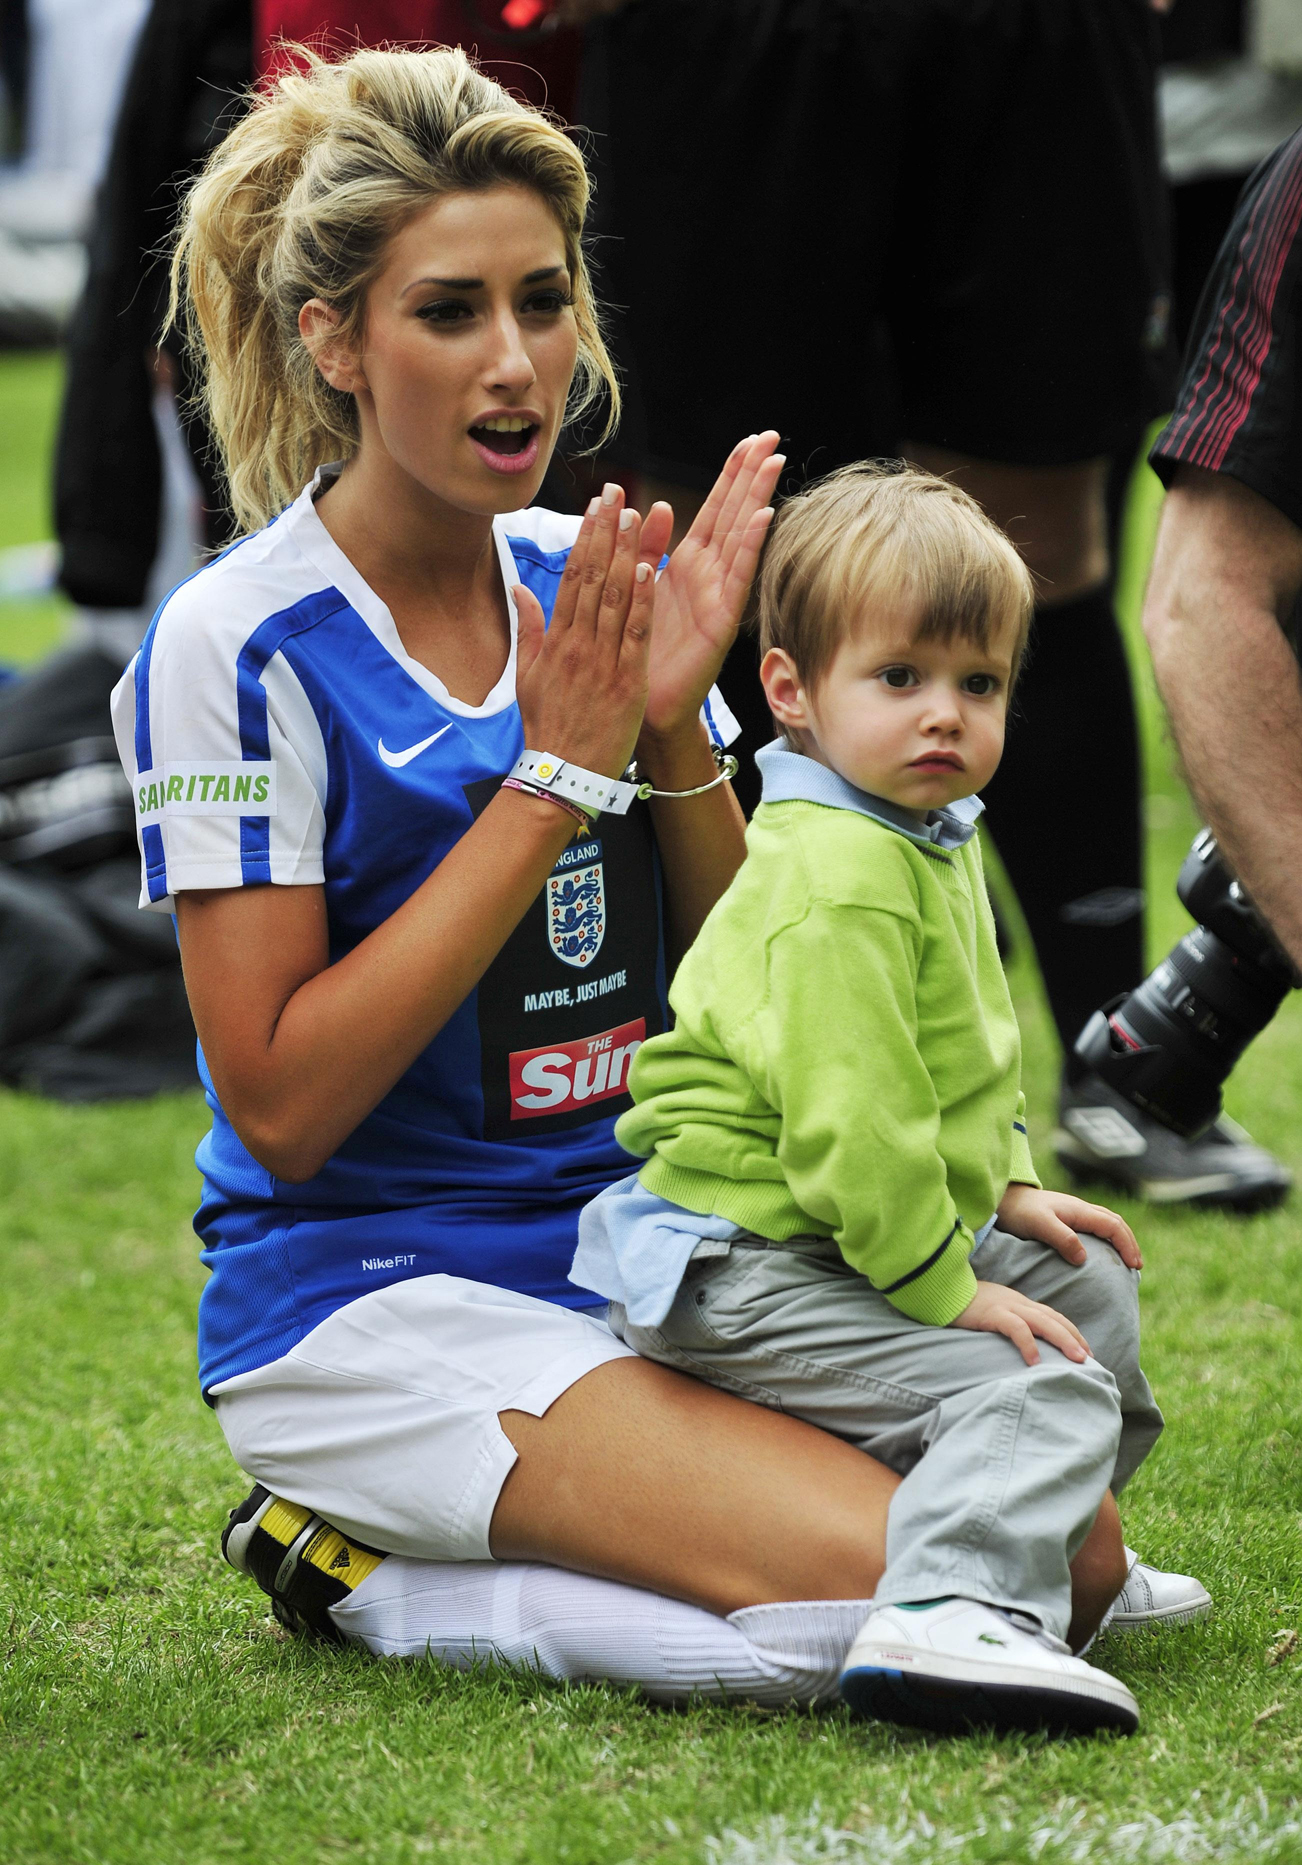 Stacey Solomon watches a game with her son, Zachary during the annual Soccer Six tournament at Charlton Athletic Football Club in 2010. (Tim Ireland/PA)